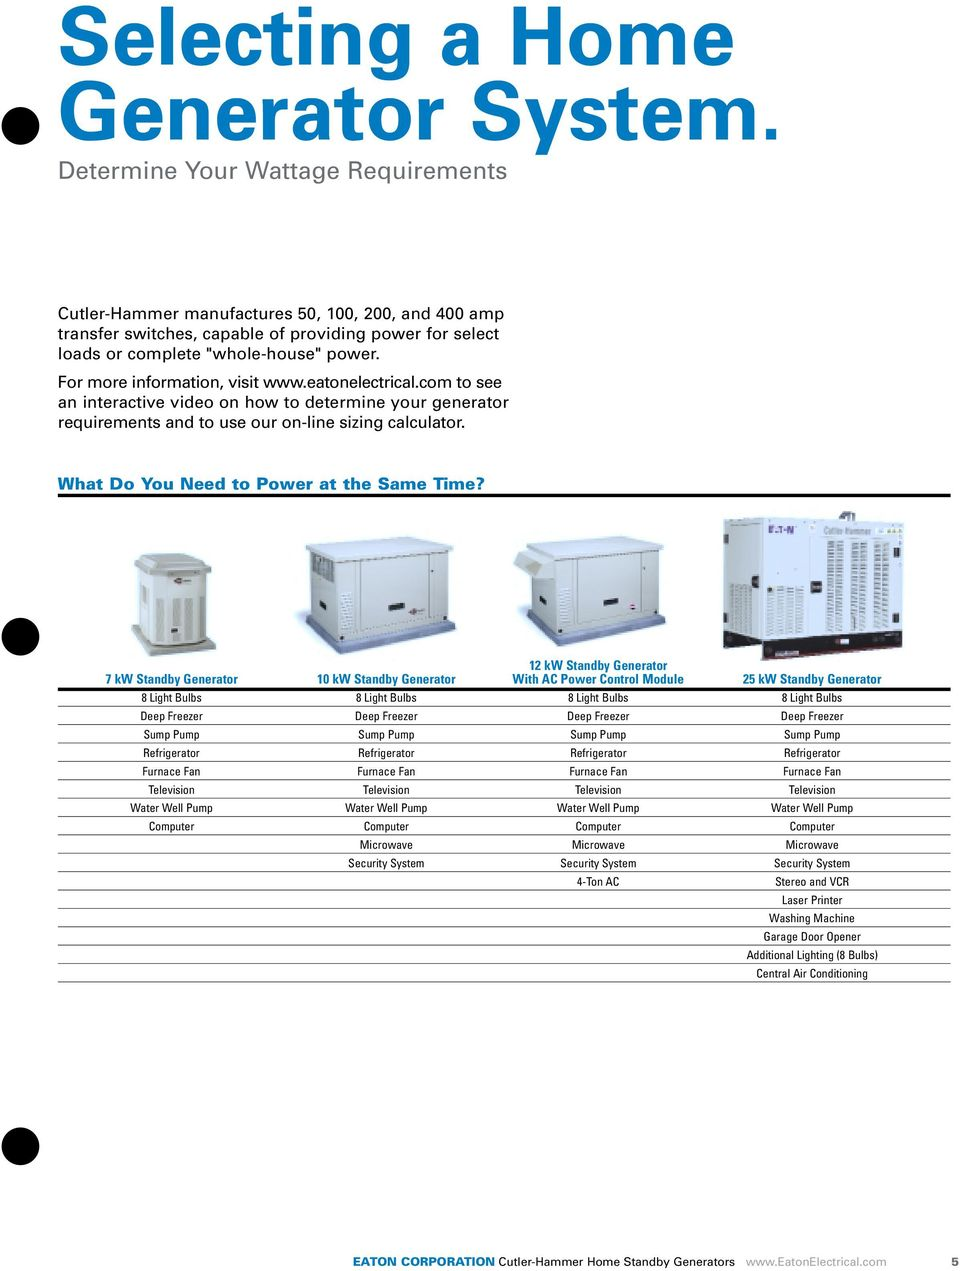 For more information, visit www.eatonelectrical.com to see an interactive video on how to determine your generator requirements and to use our on-line sizing calculator.